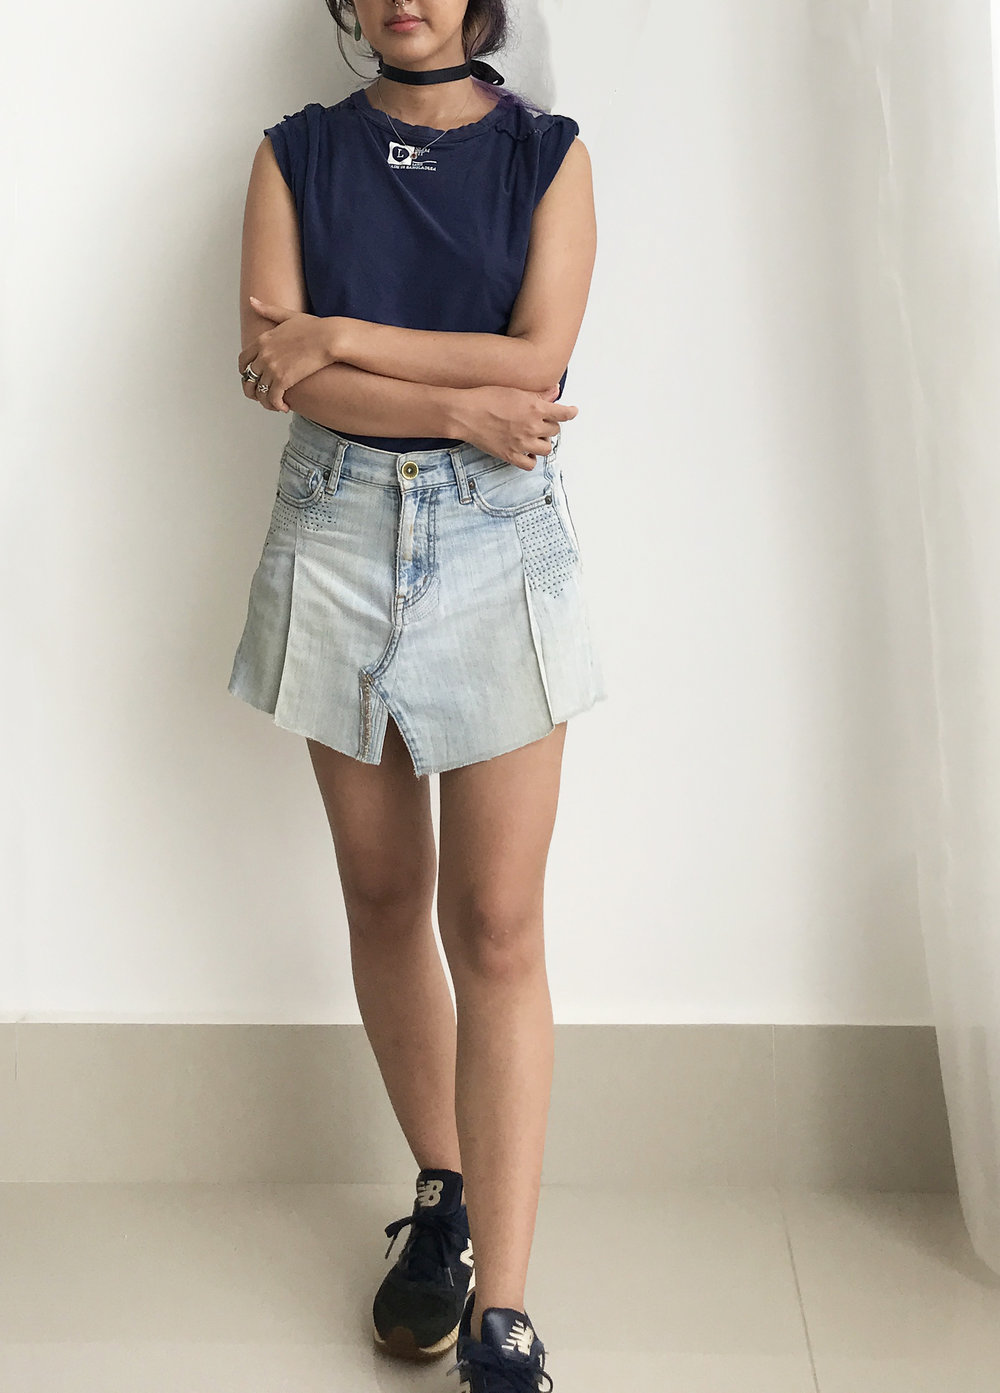 FashionTechsupport-Jean-shorts-after-lookbook-front.jpg